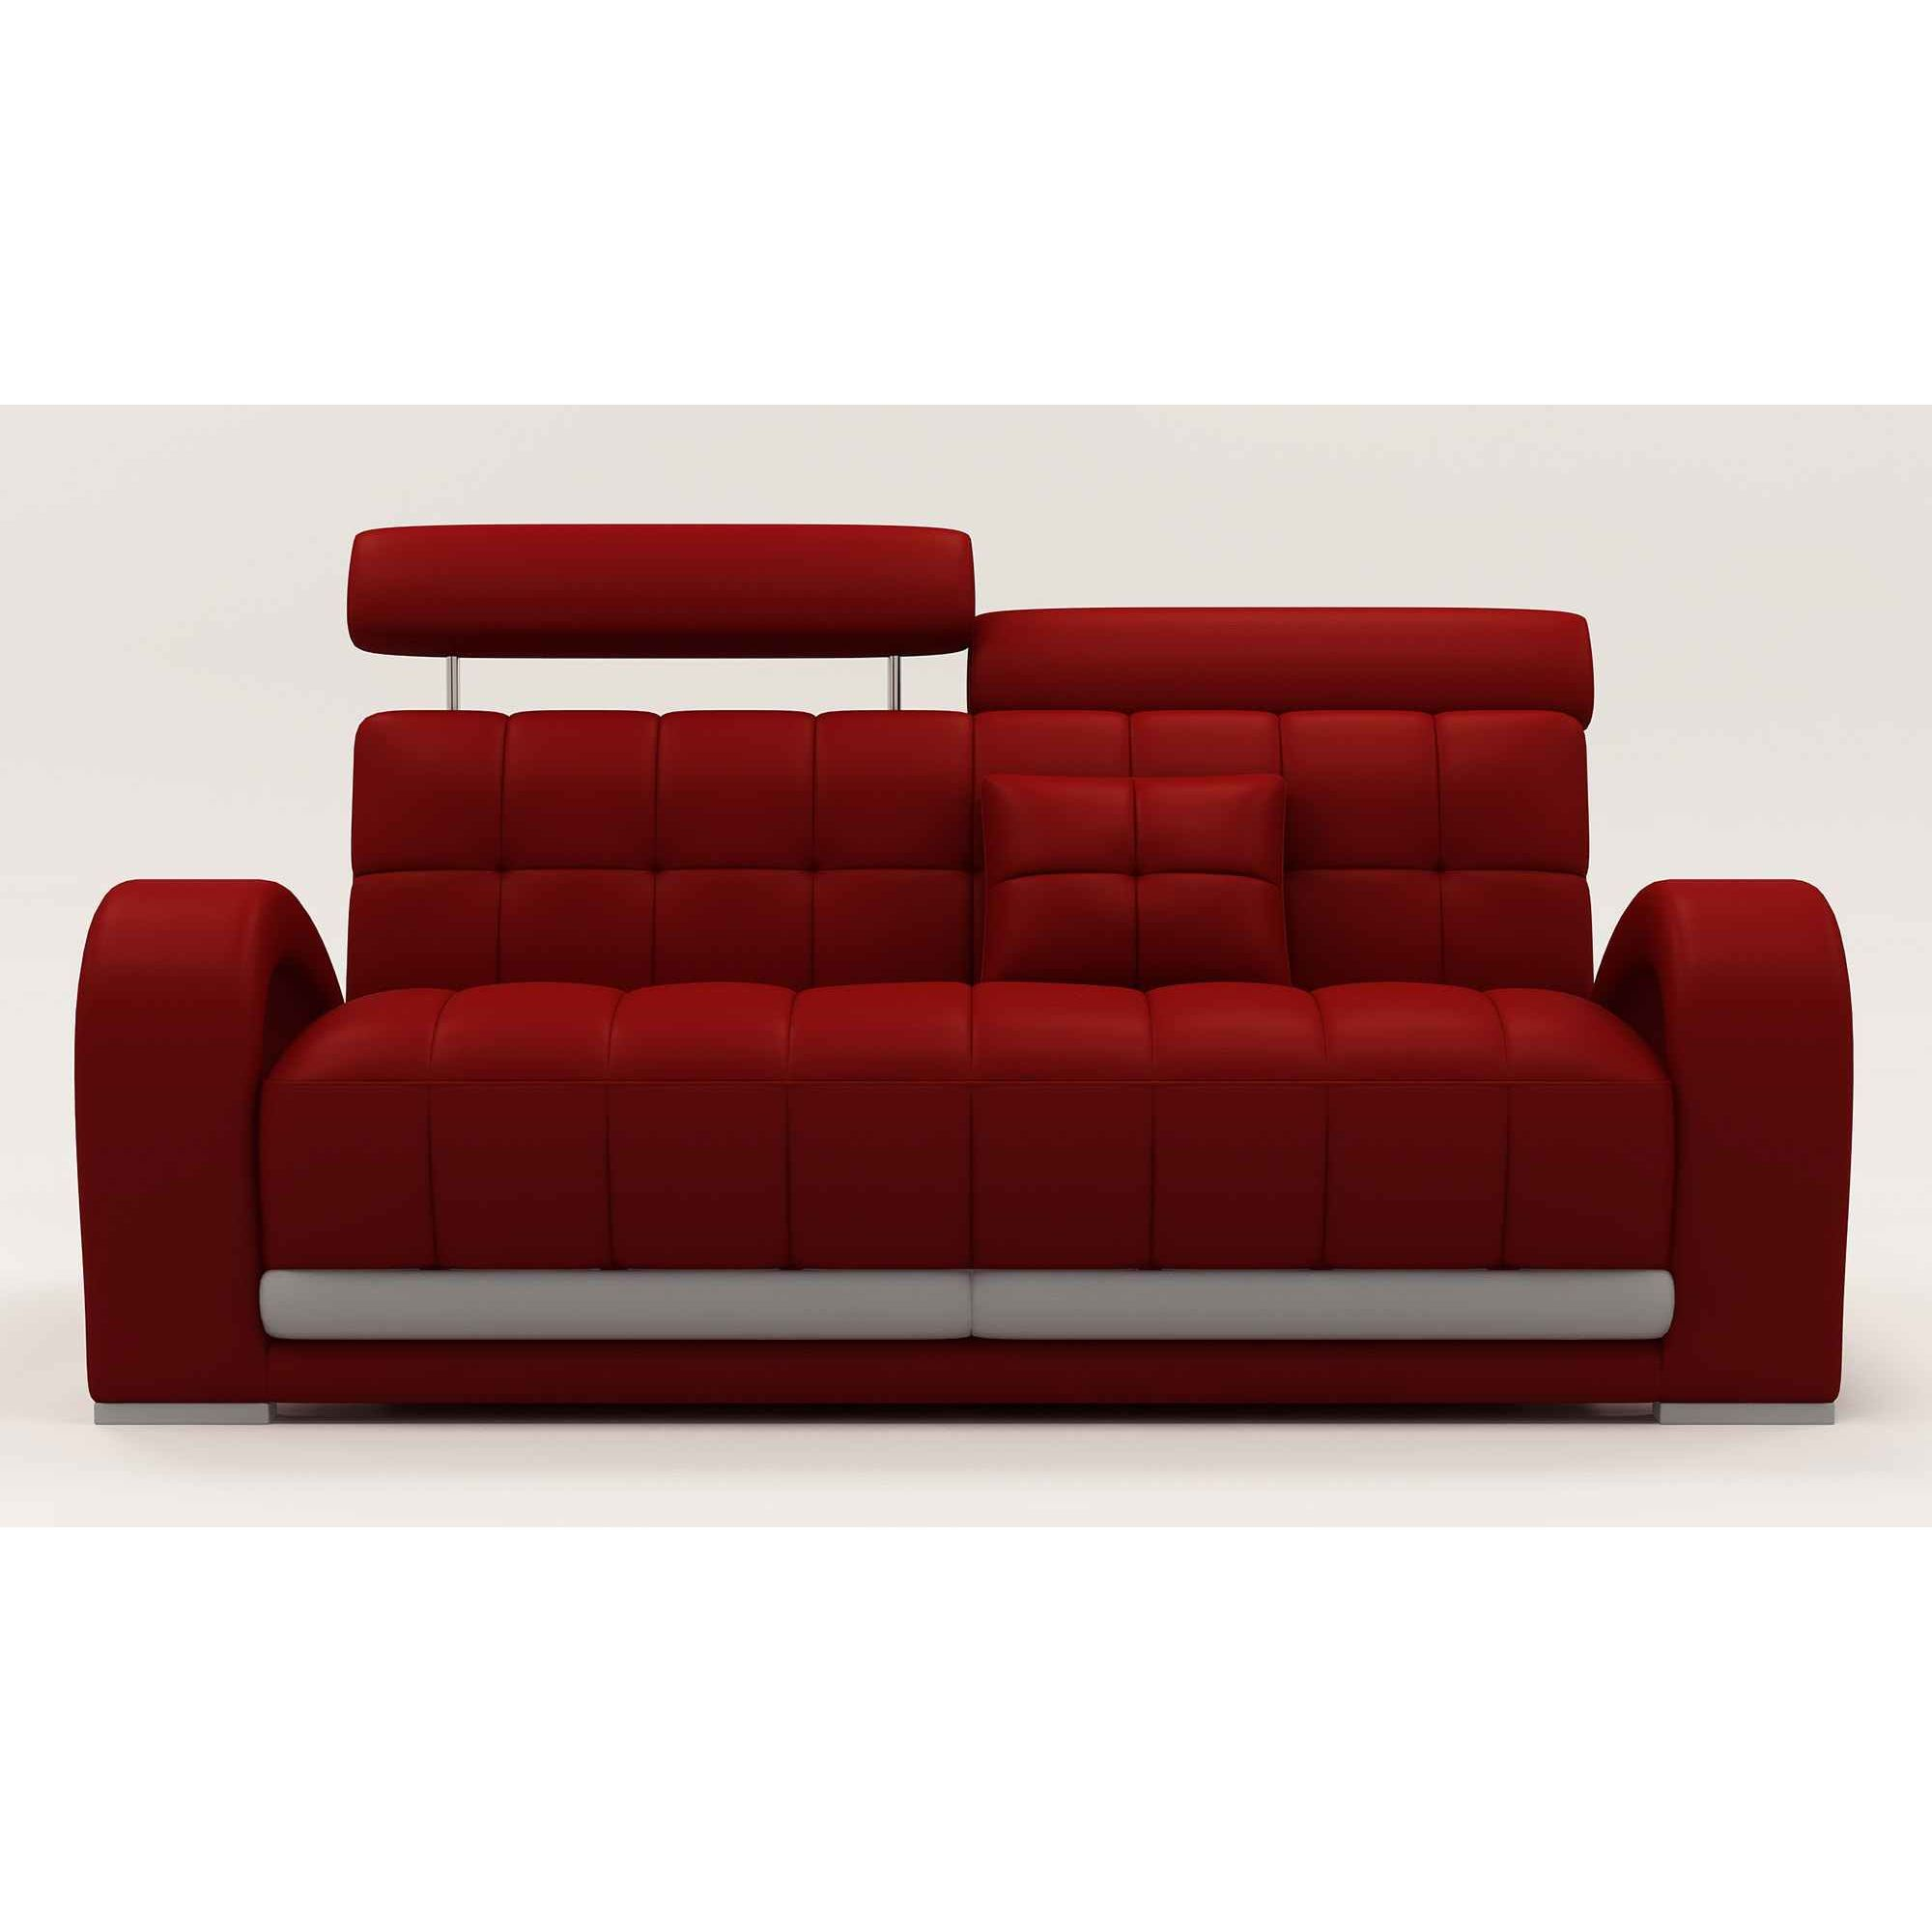 Deco in paris canape cuir rouge 3 places verdi can verdi 3p pu rouge - Canape cuir bicolore ...